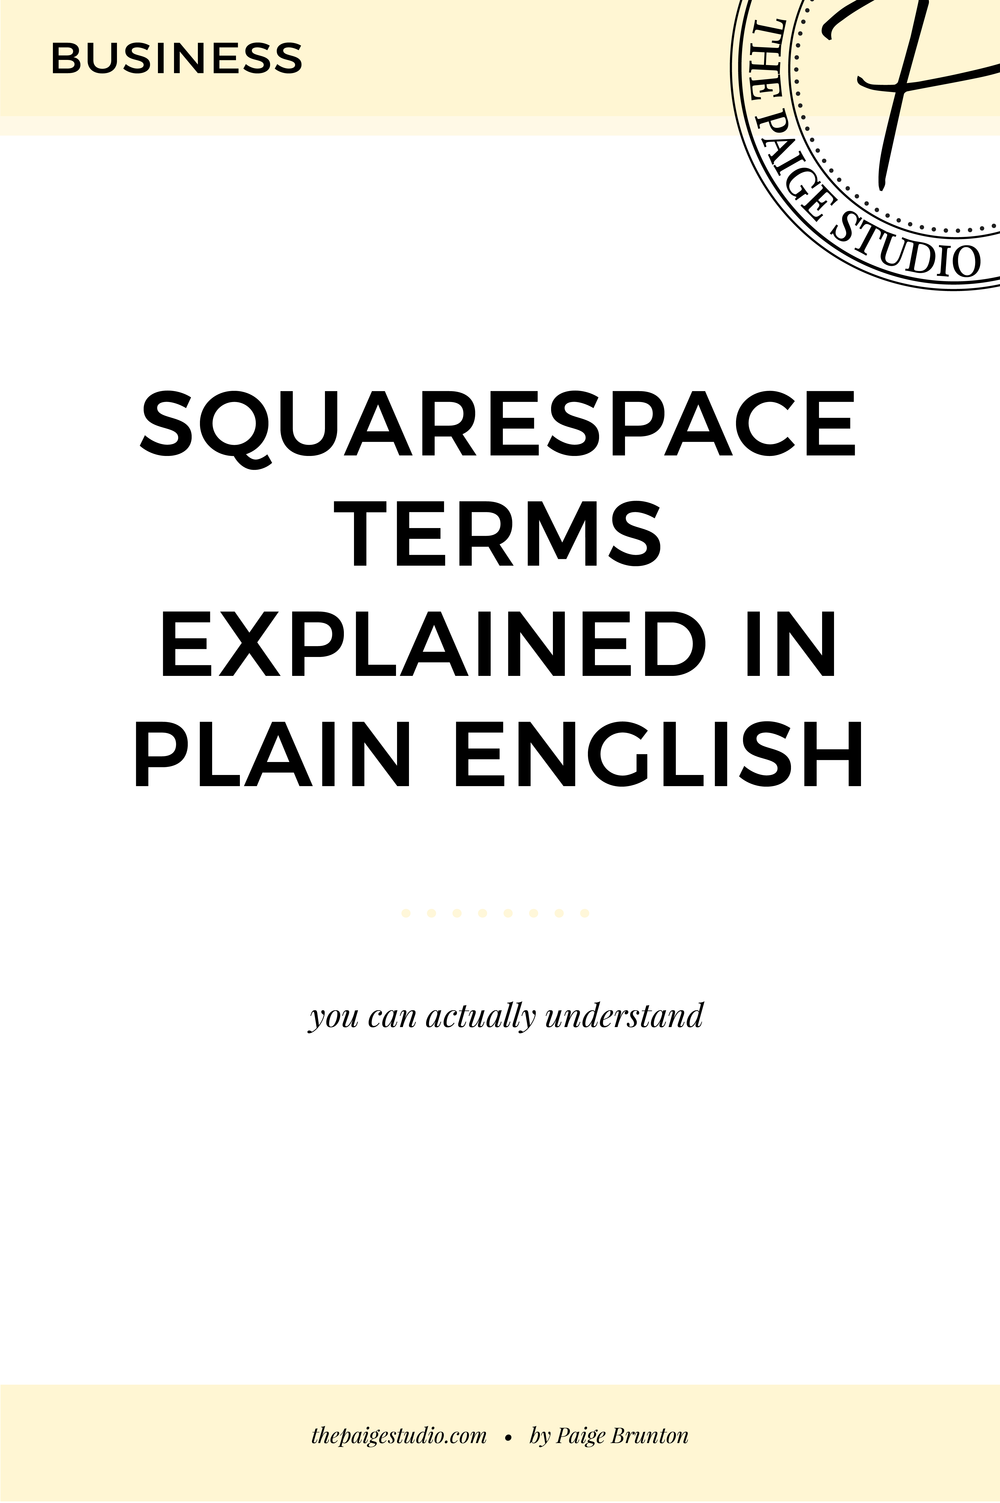 Squarespace terms explained in plain English you can actually understand .png